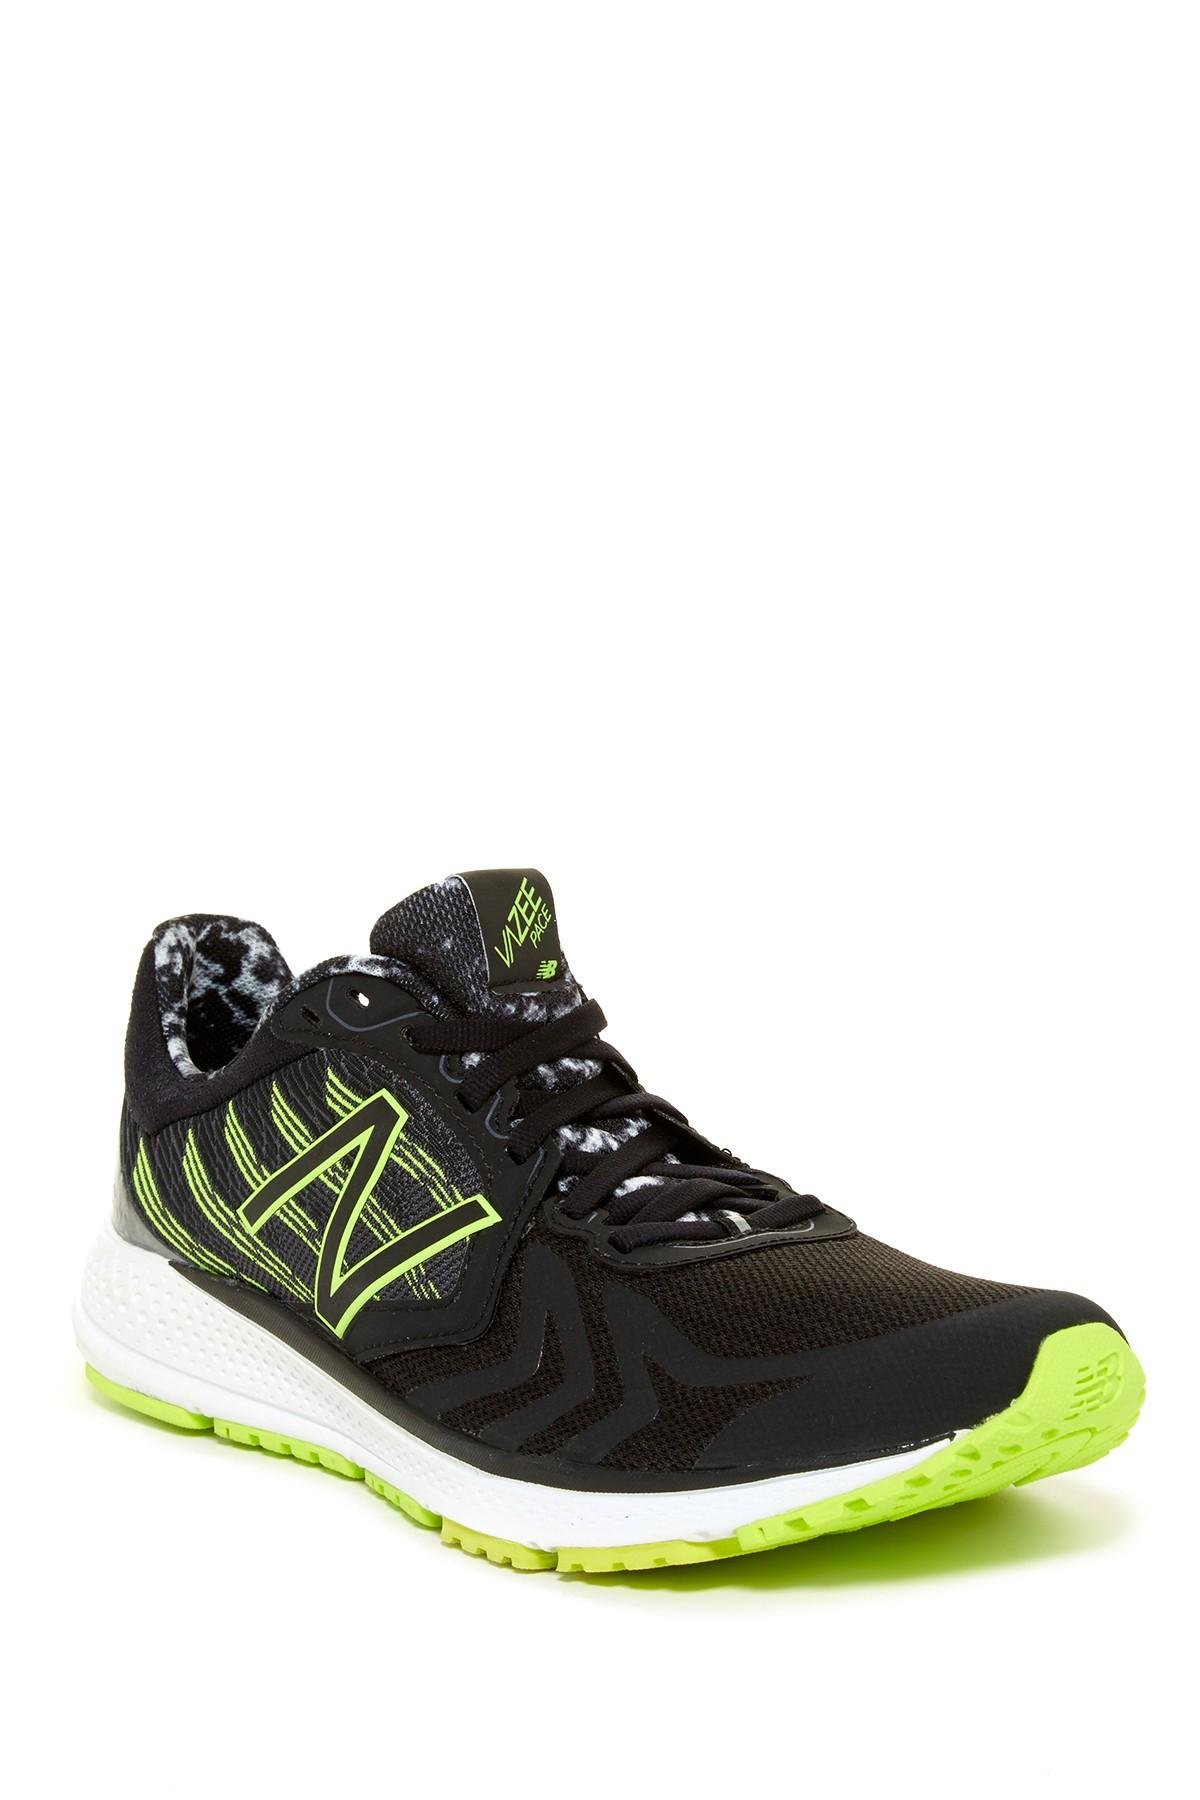 Running Shoes With More Support On Balls Of Feet